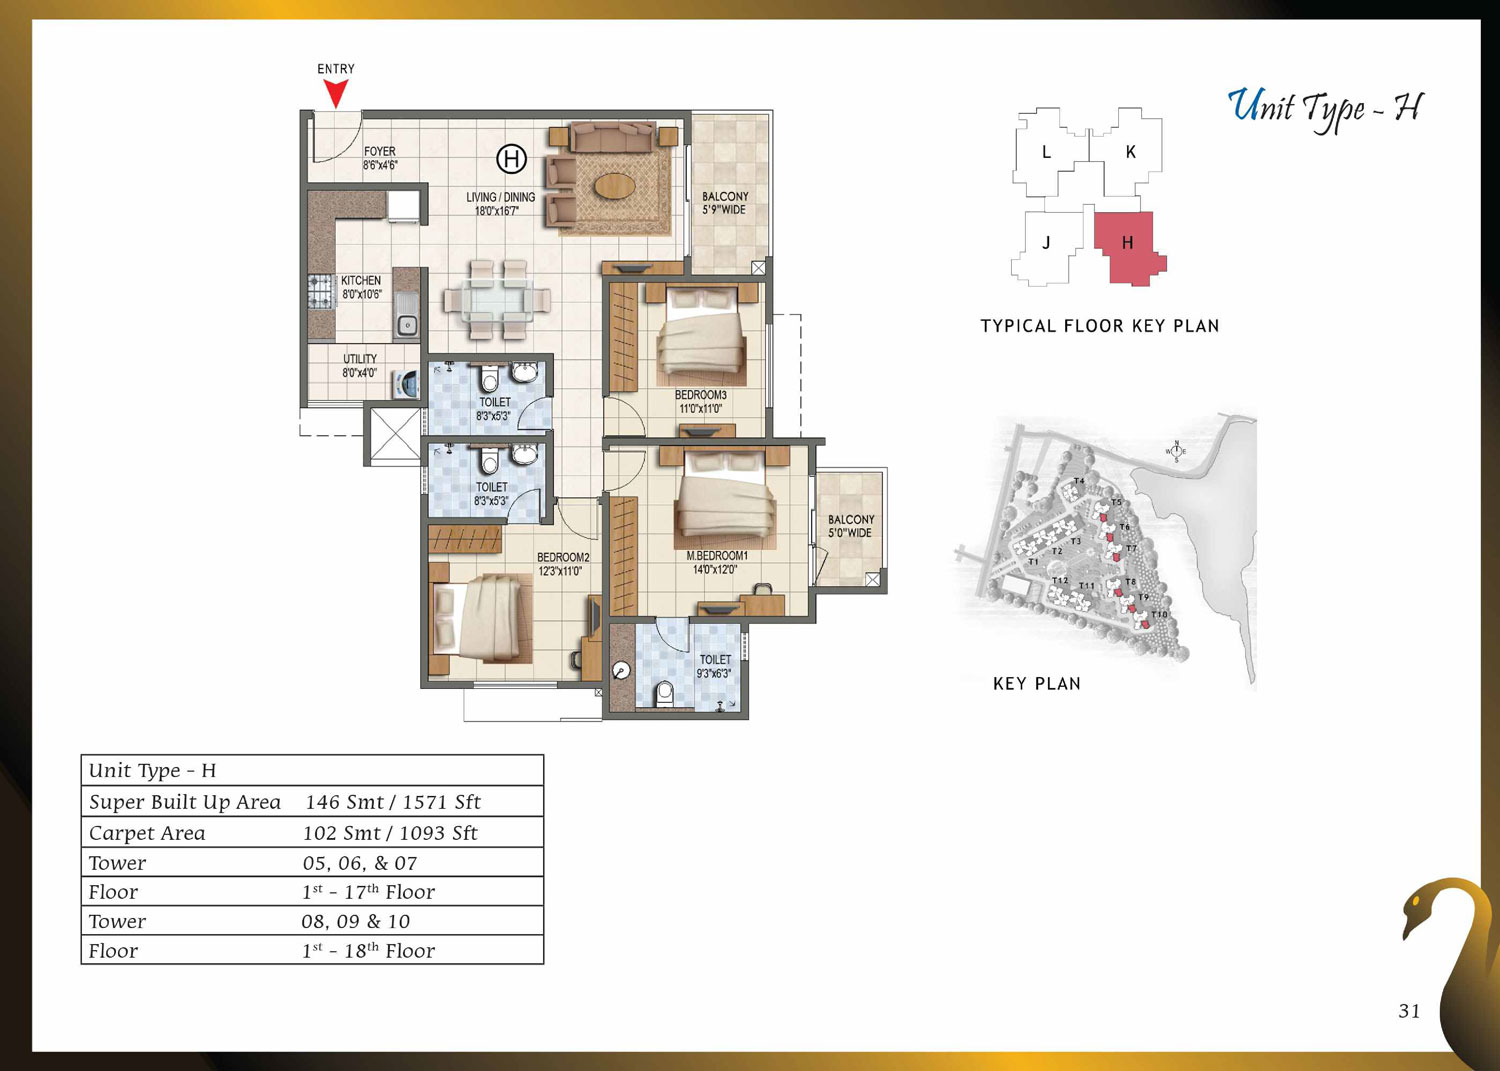 Type H - 1571 Sq Ft